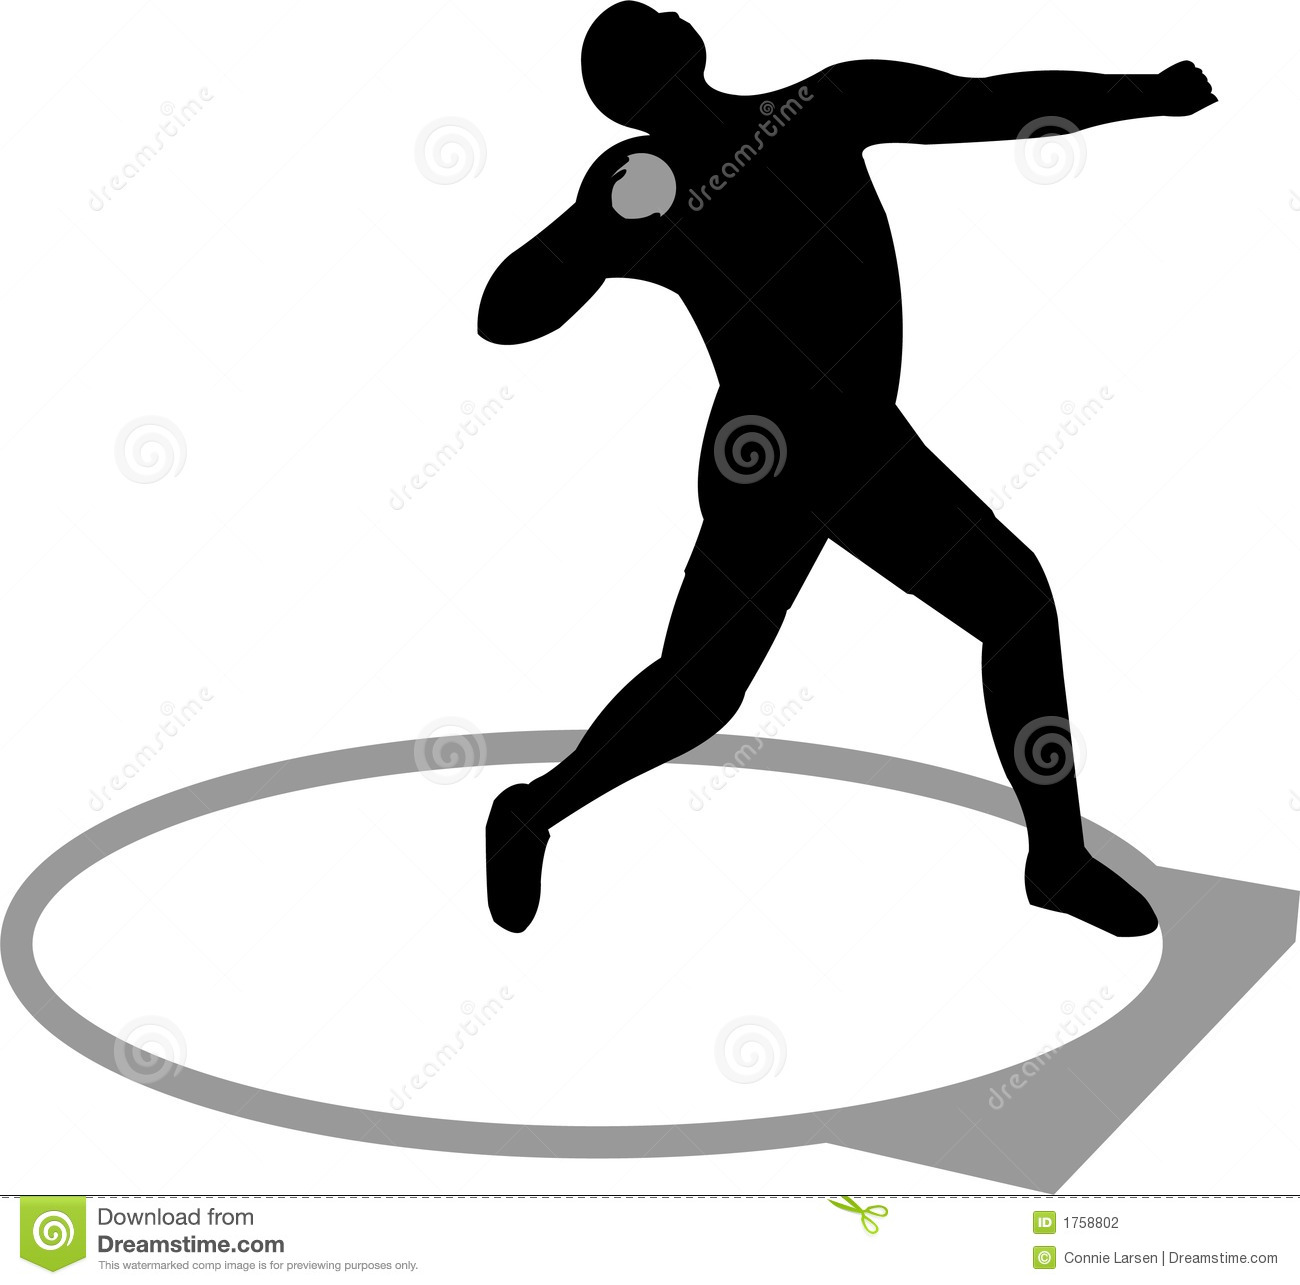 Illustration of a track and field athlete competing in shot put.